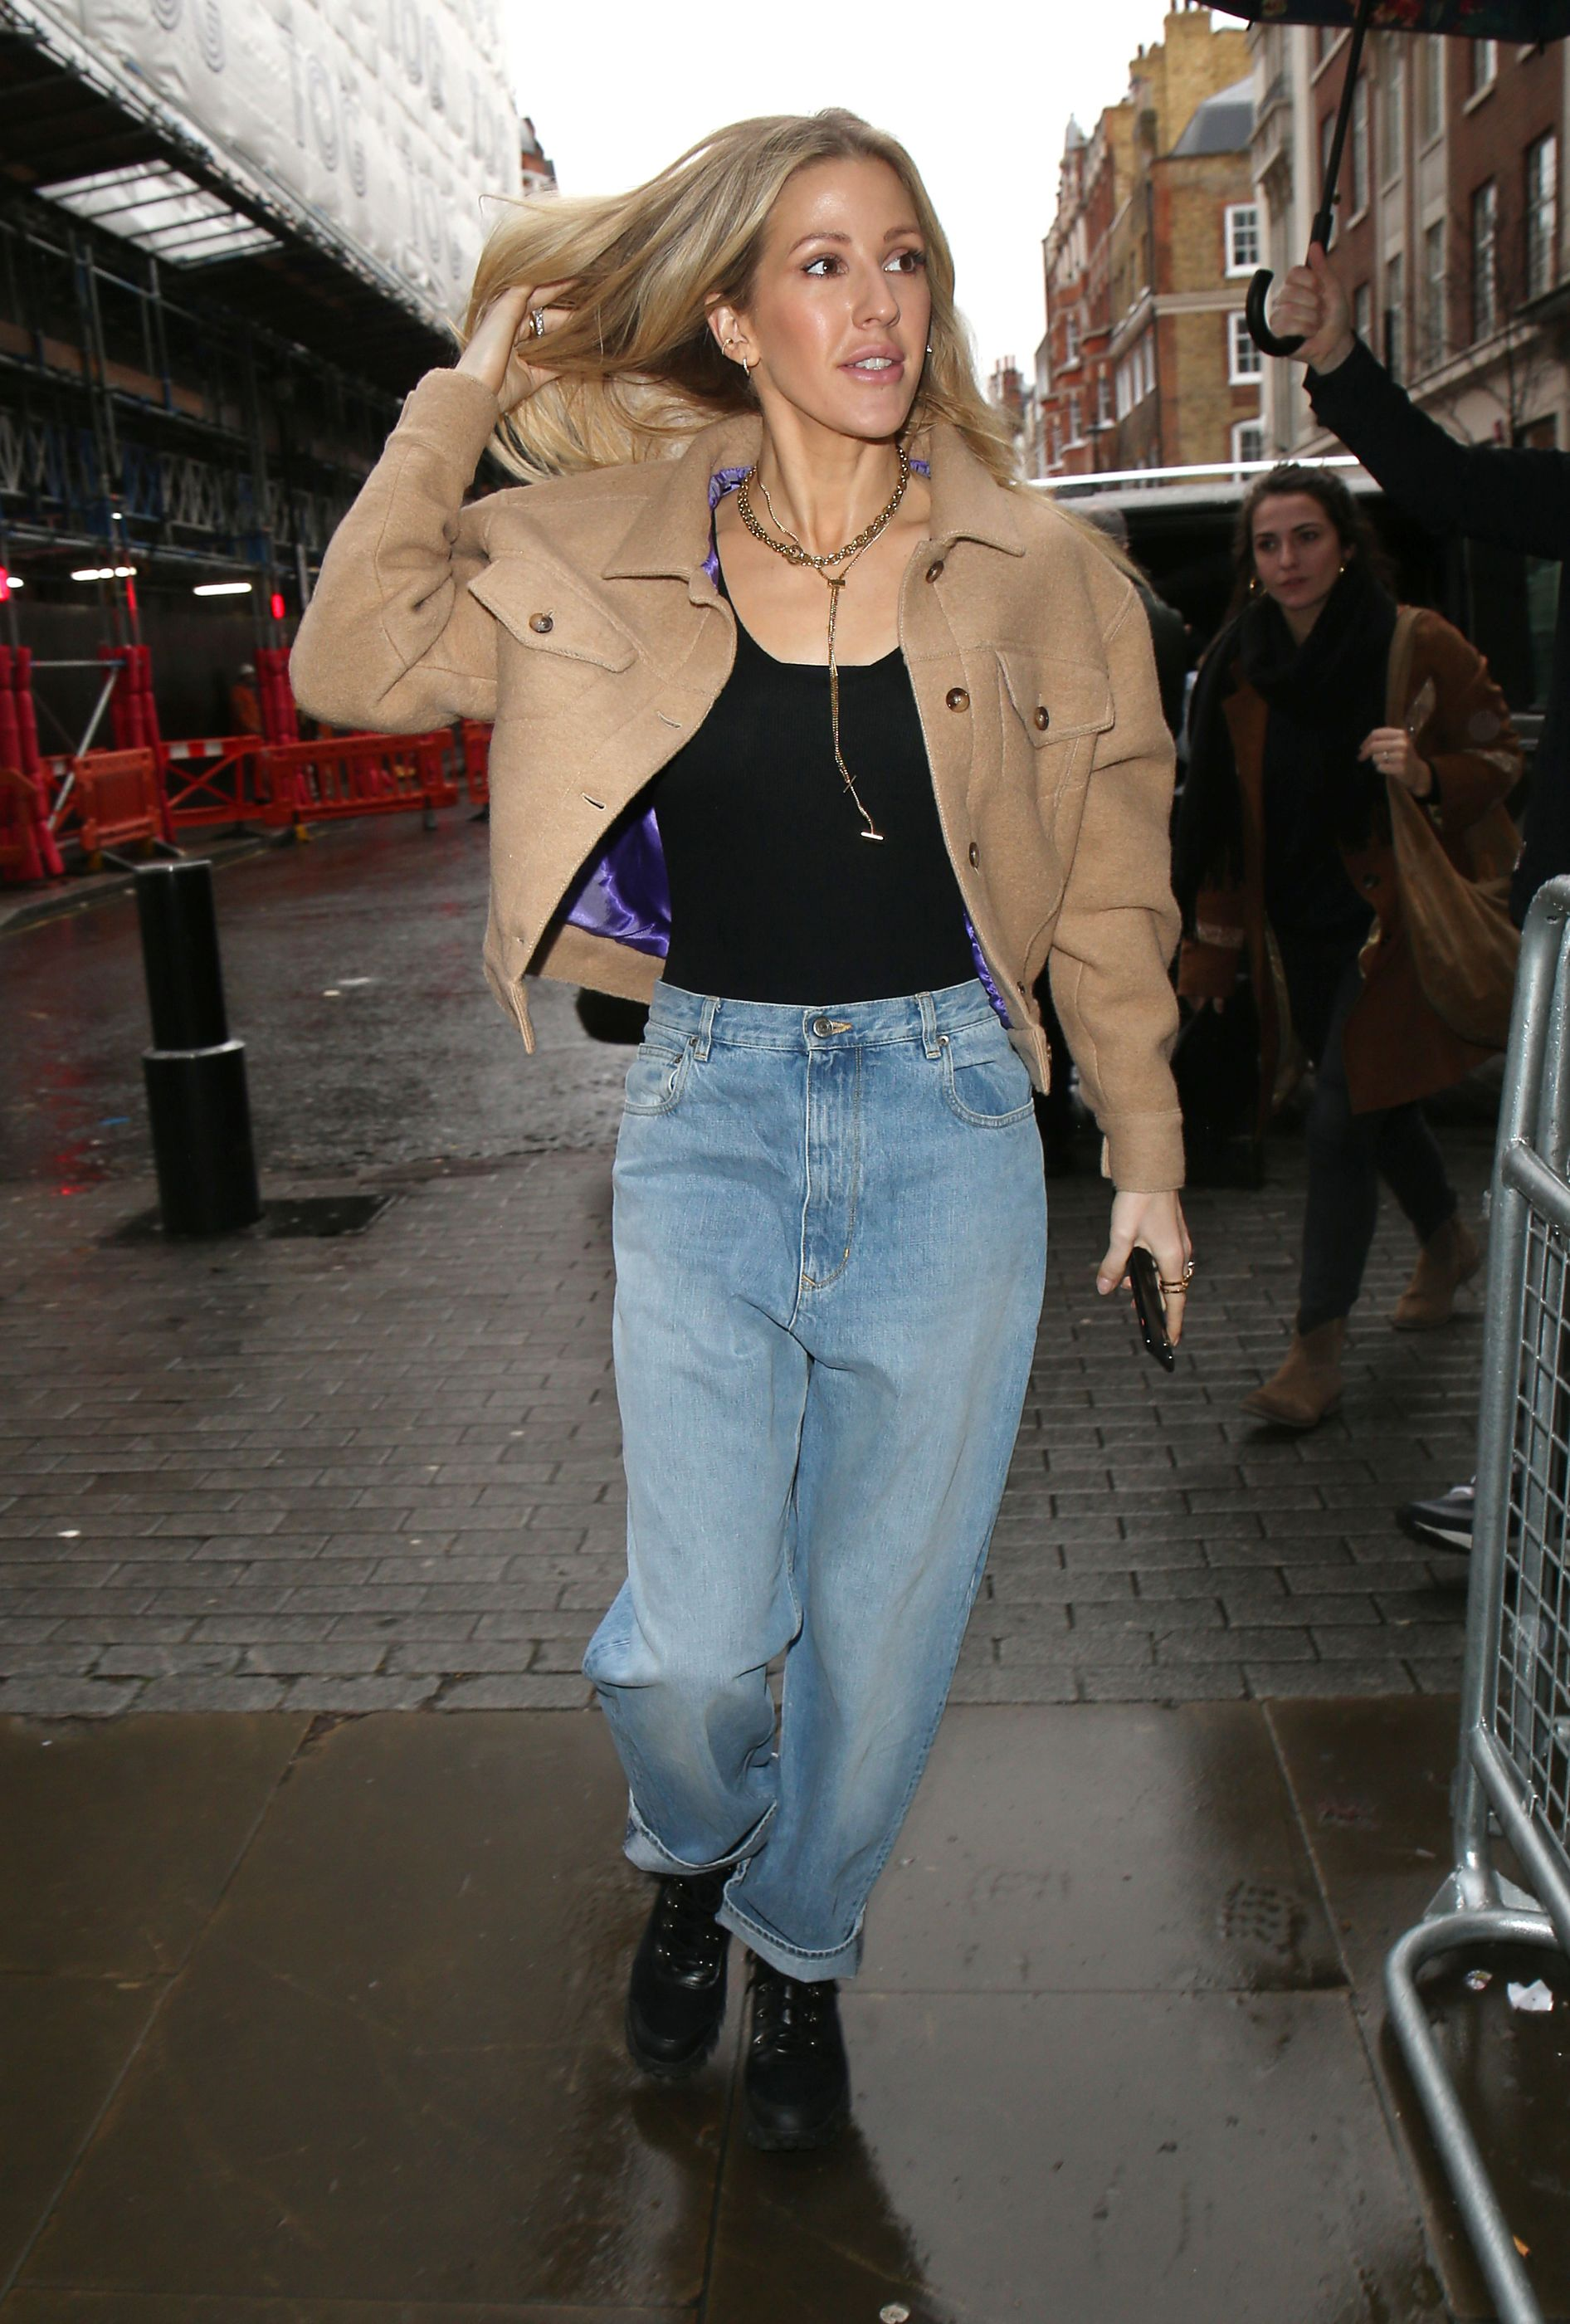 Ellie Goulding Arriving for a BBC 1 Live Lounge Performance in London